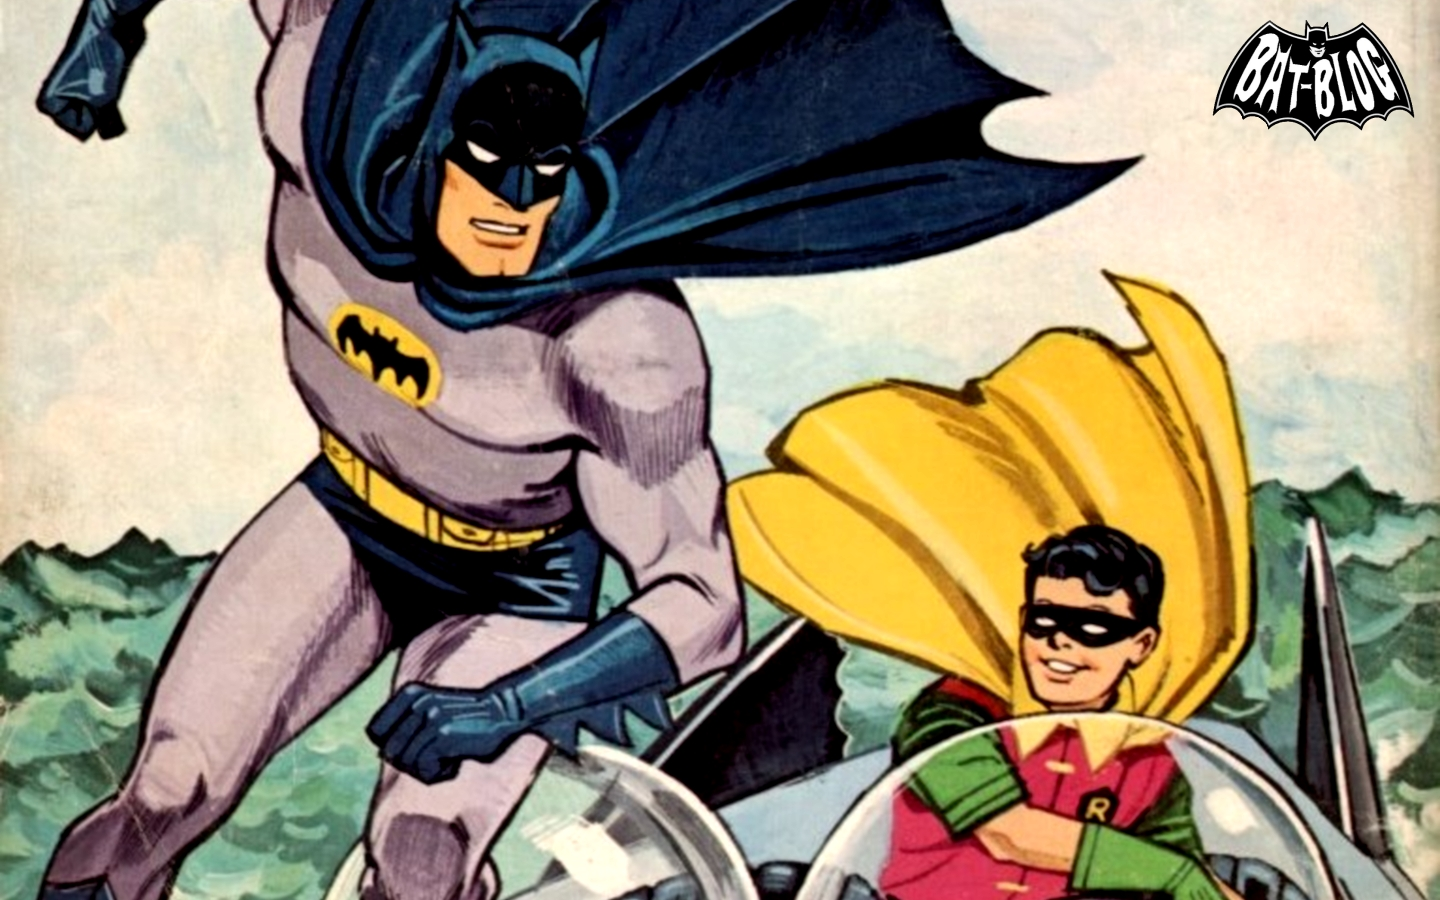 These 2 Bat Wallpapers Were Made Using Graphics From Some Older Vintage 1966 Batman Coloring Books That Long Time Collectors Might Recognize